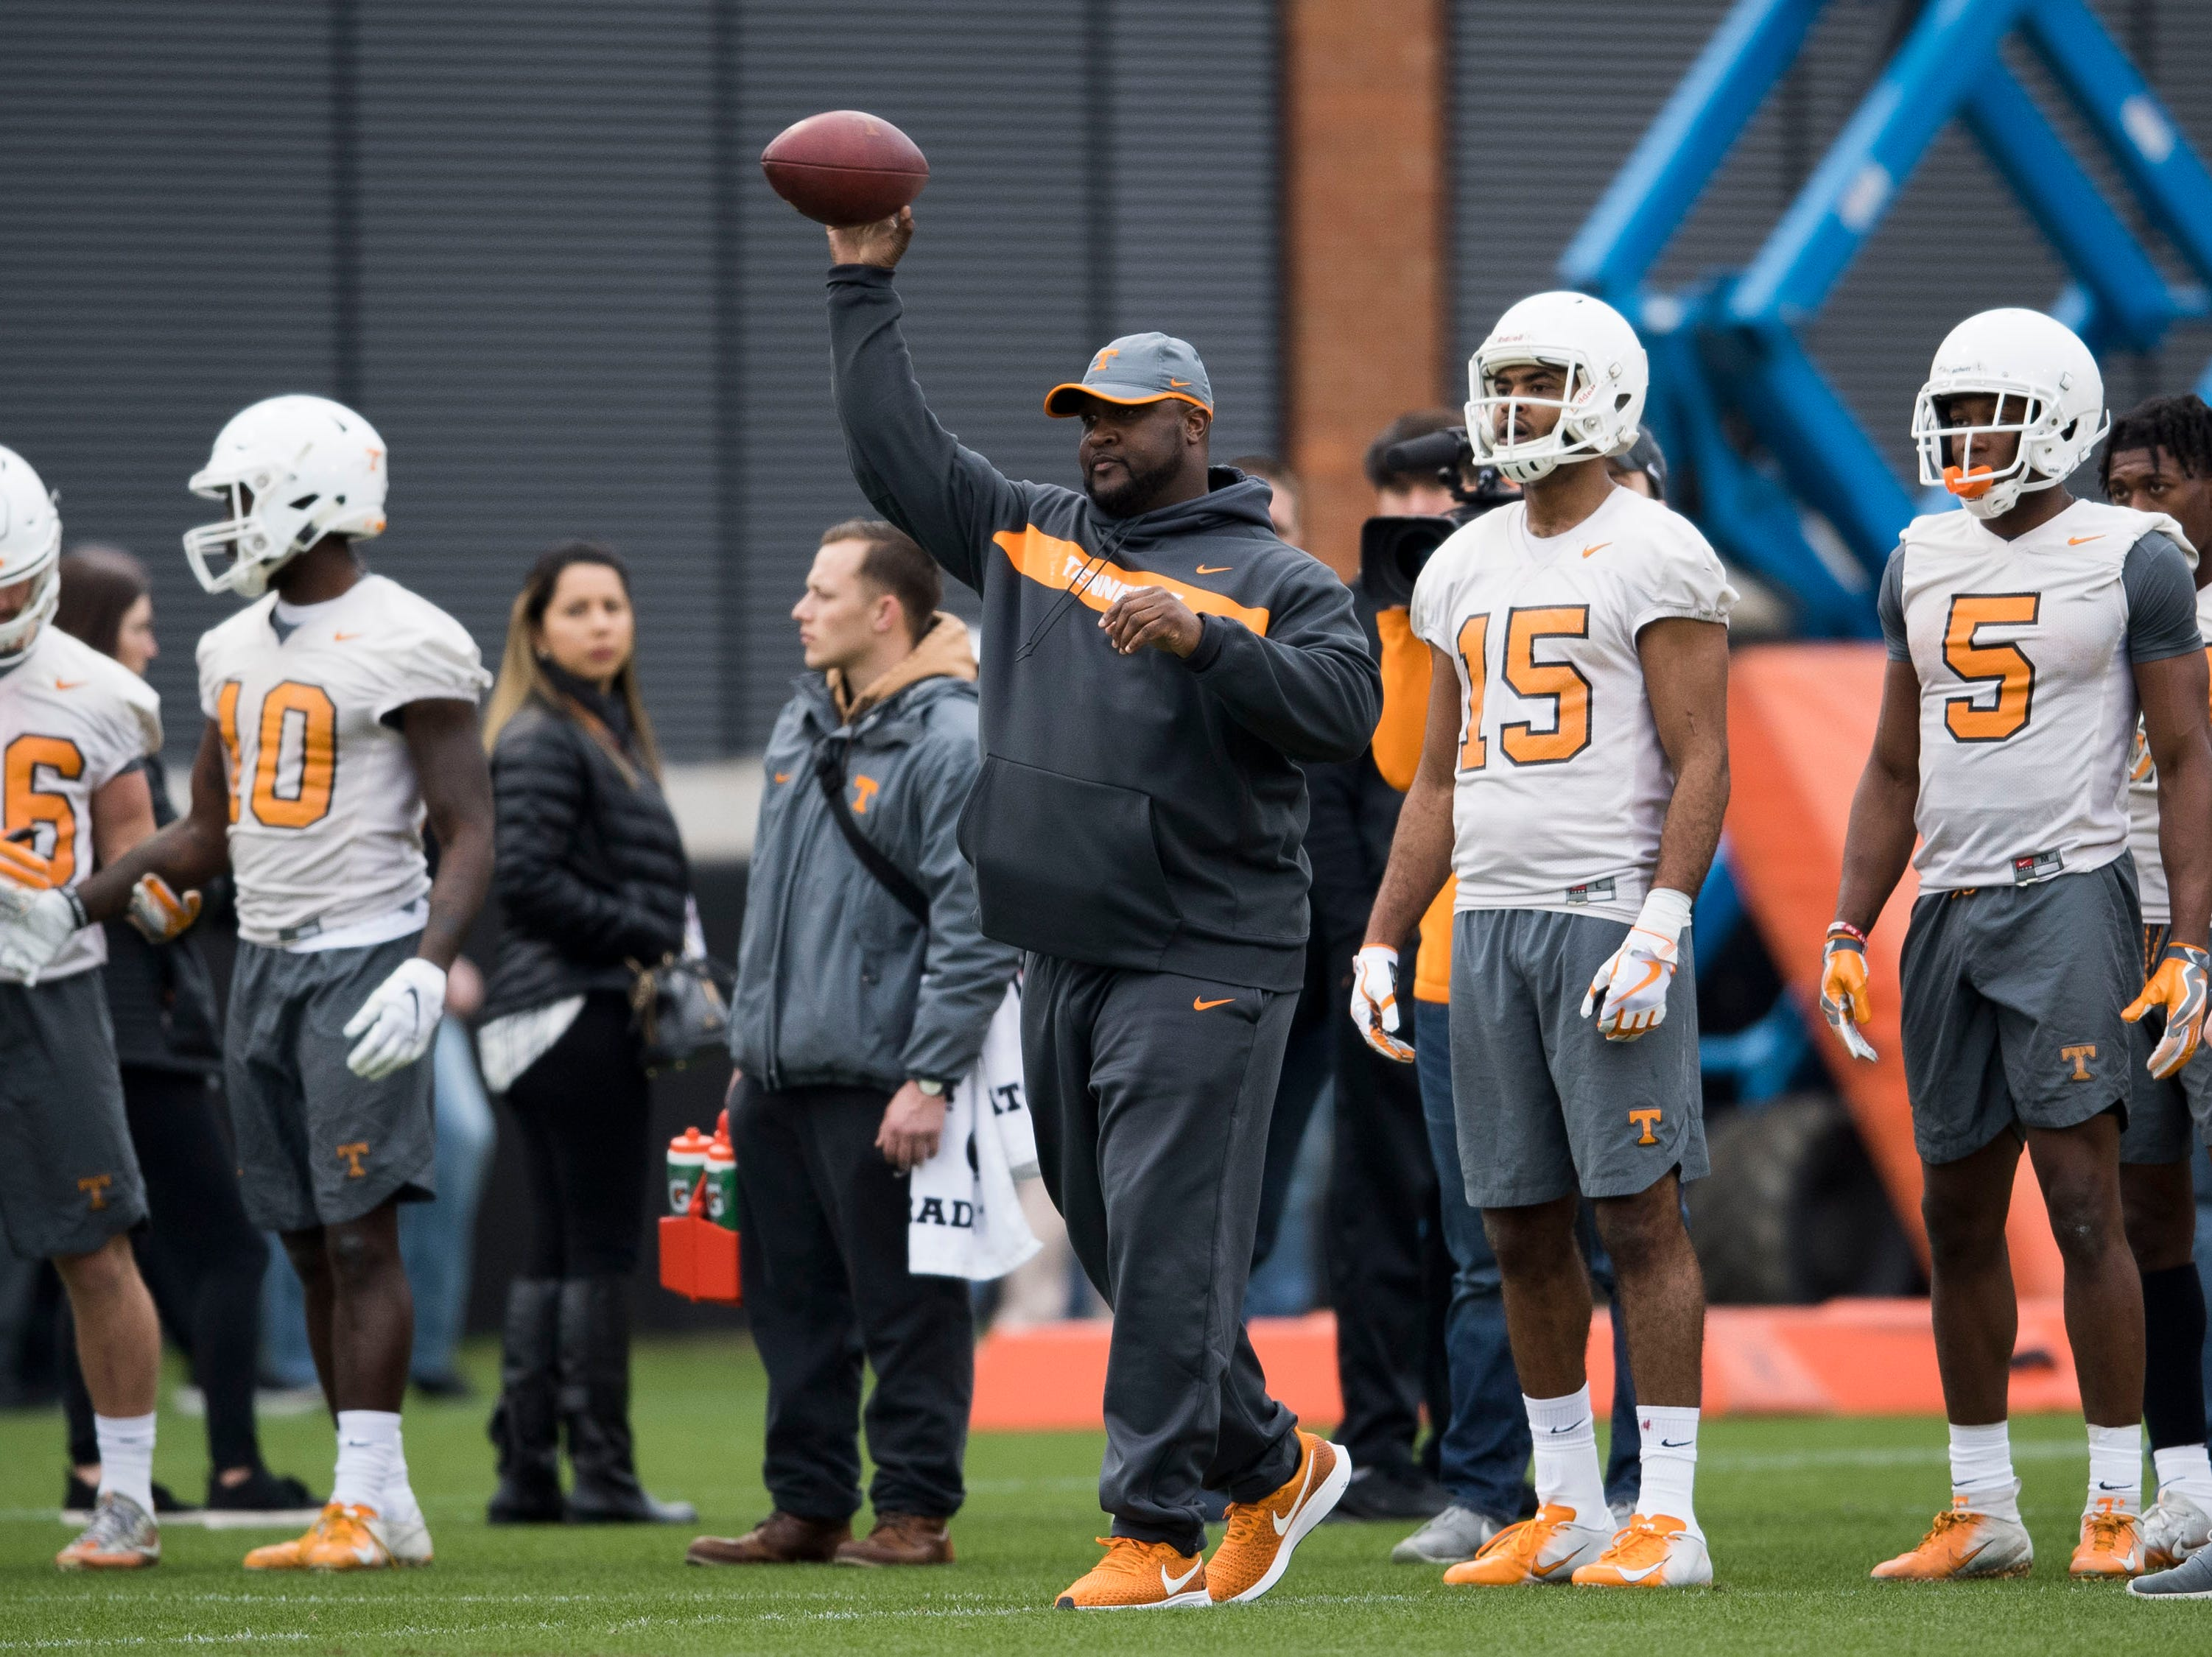 Assistant head coach Tee Martin throws the ball during Tennessee football's first practice of the spring season at University of Tennessee Thursday, March 7, 2019.